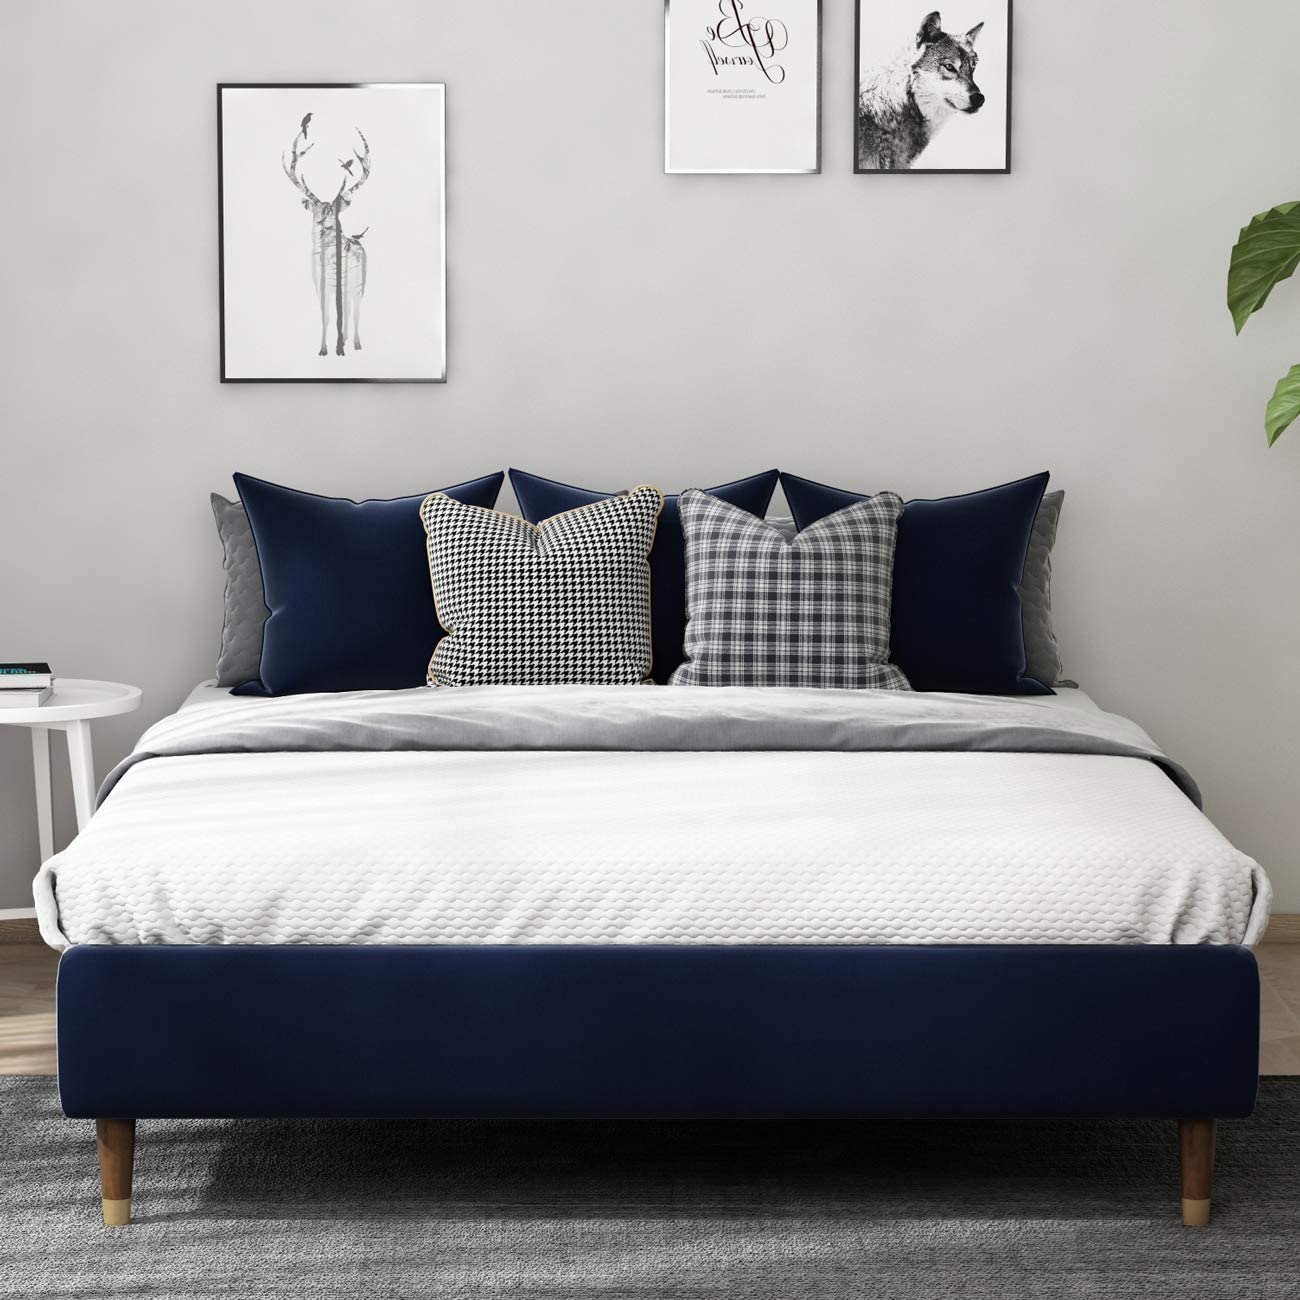 Amolife 13 Inch Upholstered Full Size Platform Bed Frame, Mattress Foundation with Wood Slat Support, Quick and Easy Assembly, Navy Blue Velvet